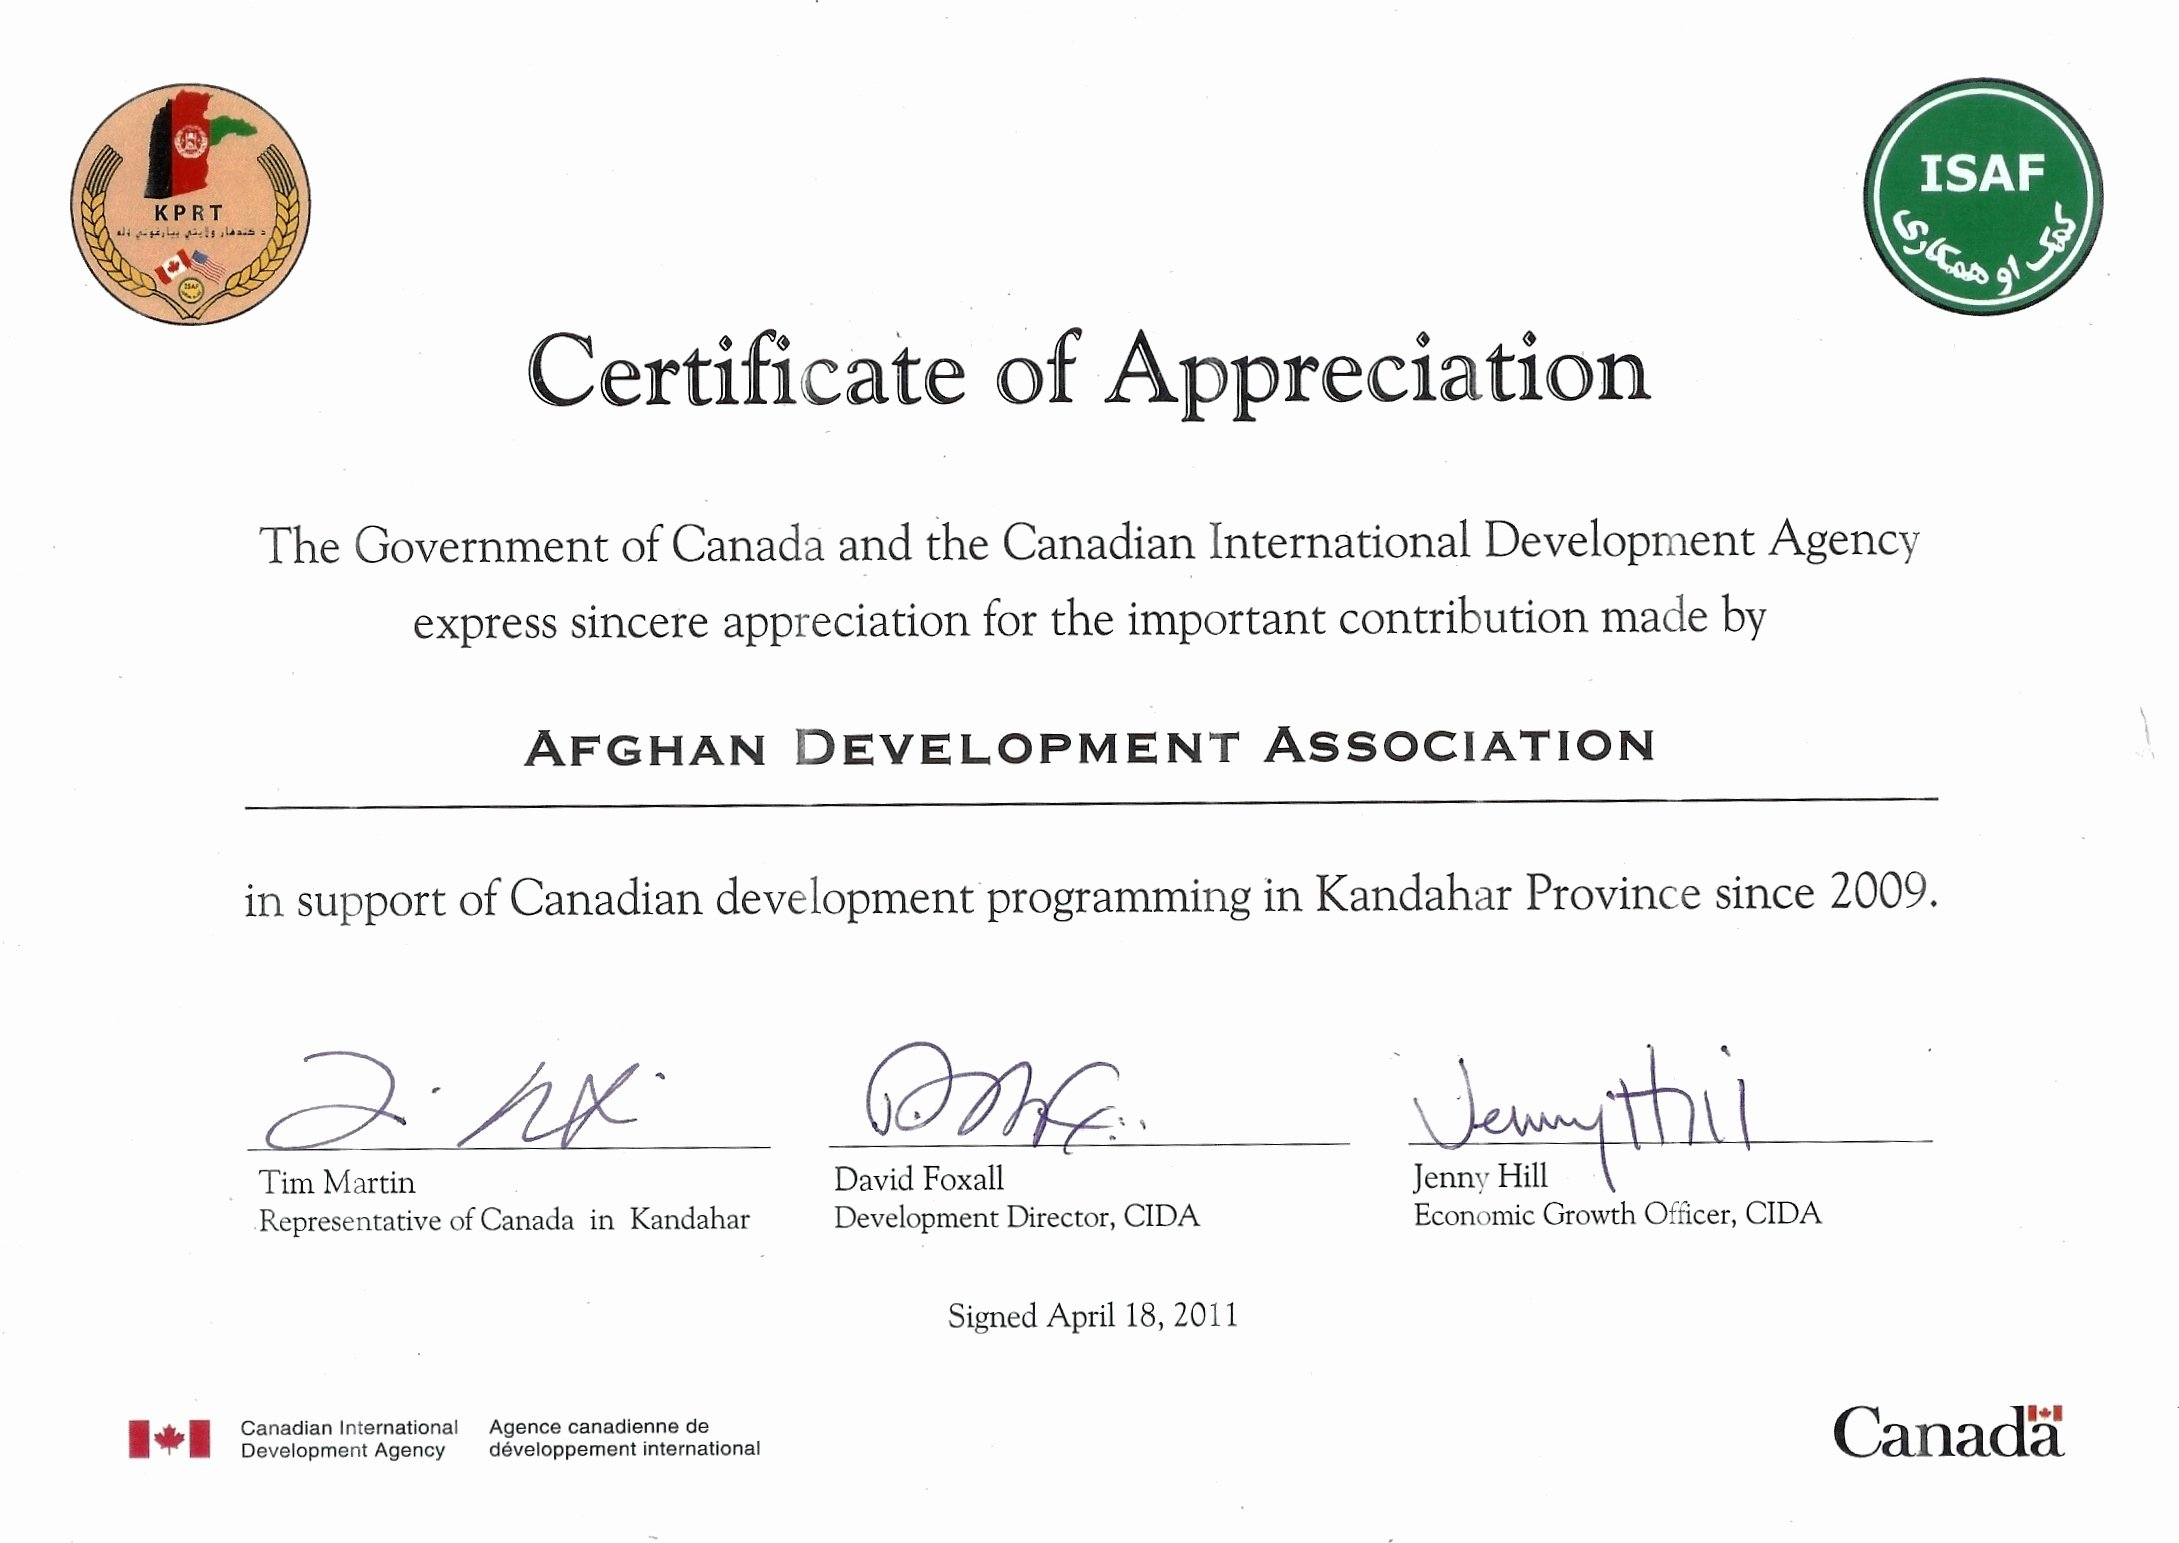 Image Of Certificate Of Appreciation Fresh Appreciation Certificates